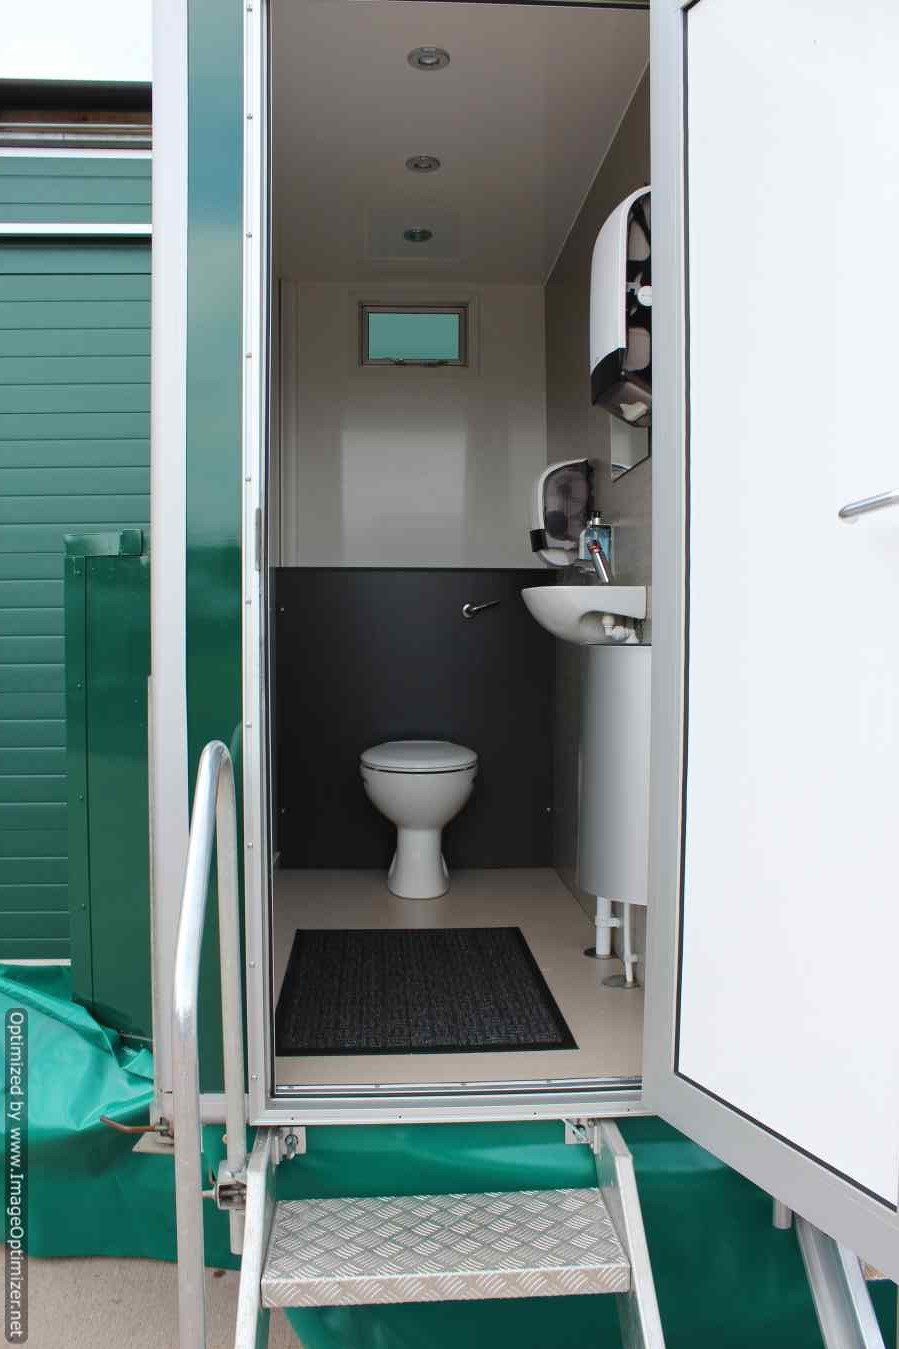 Windsor mobile toilet layout